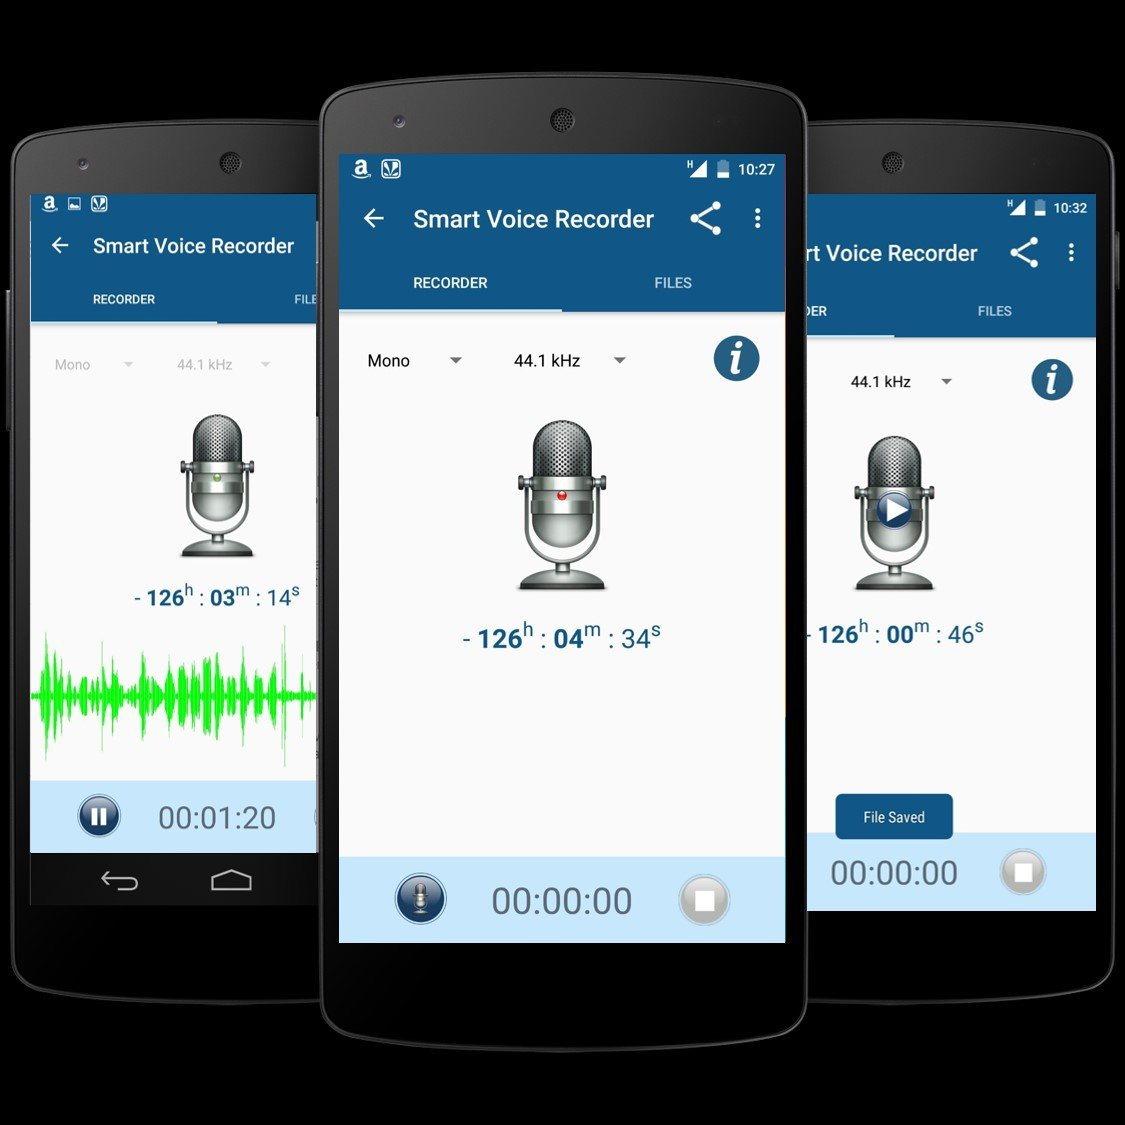 Smart Voice Recorder PRO Alternatives and Similar Apps